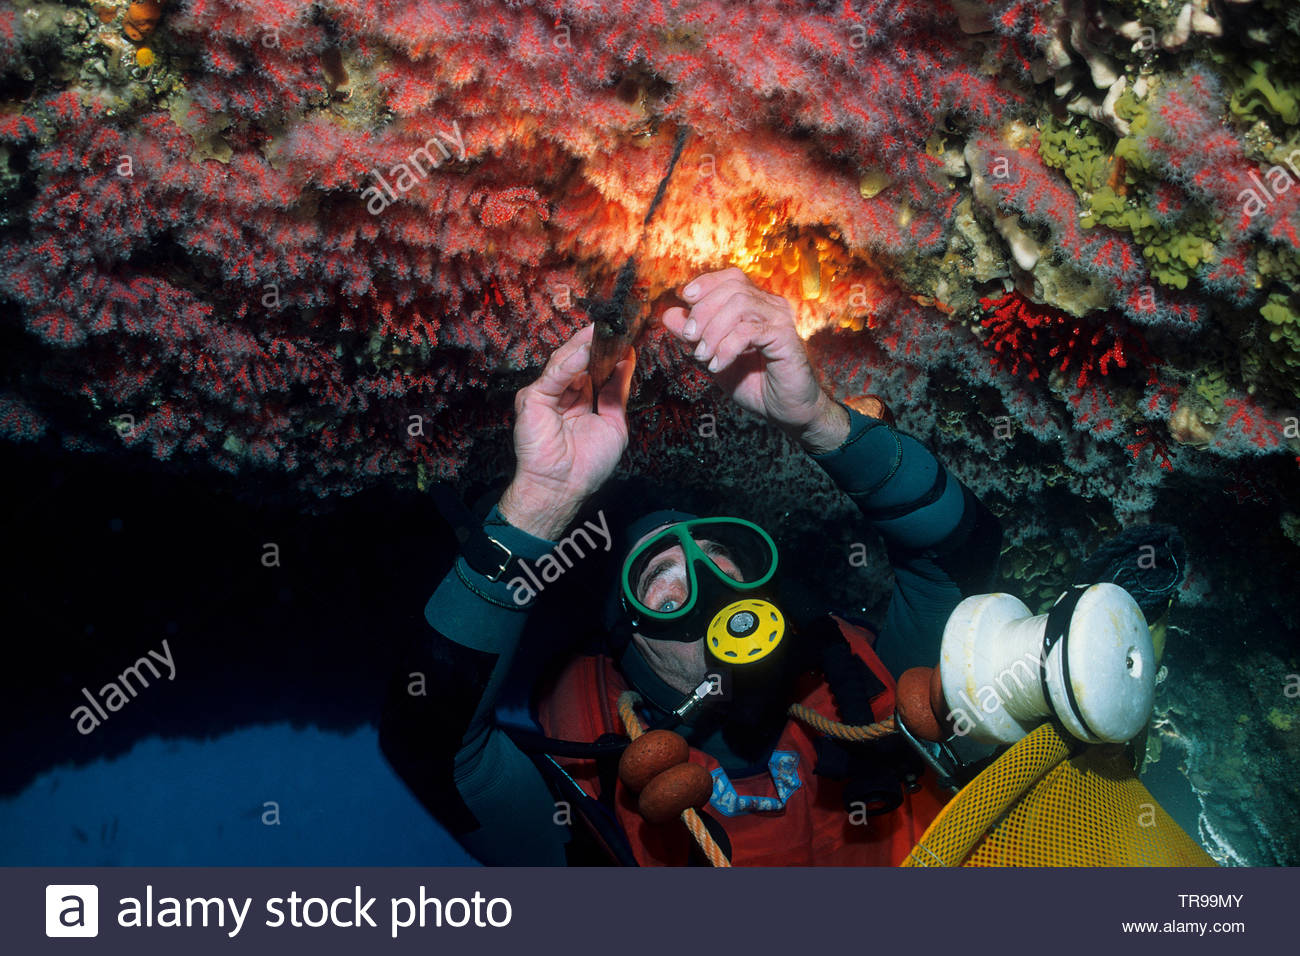 Coral diver breaking Red Corals (Corallium rubrum), at the reef, Marseillie, South France, France - Stock Image